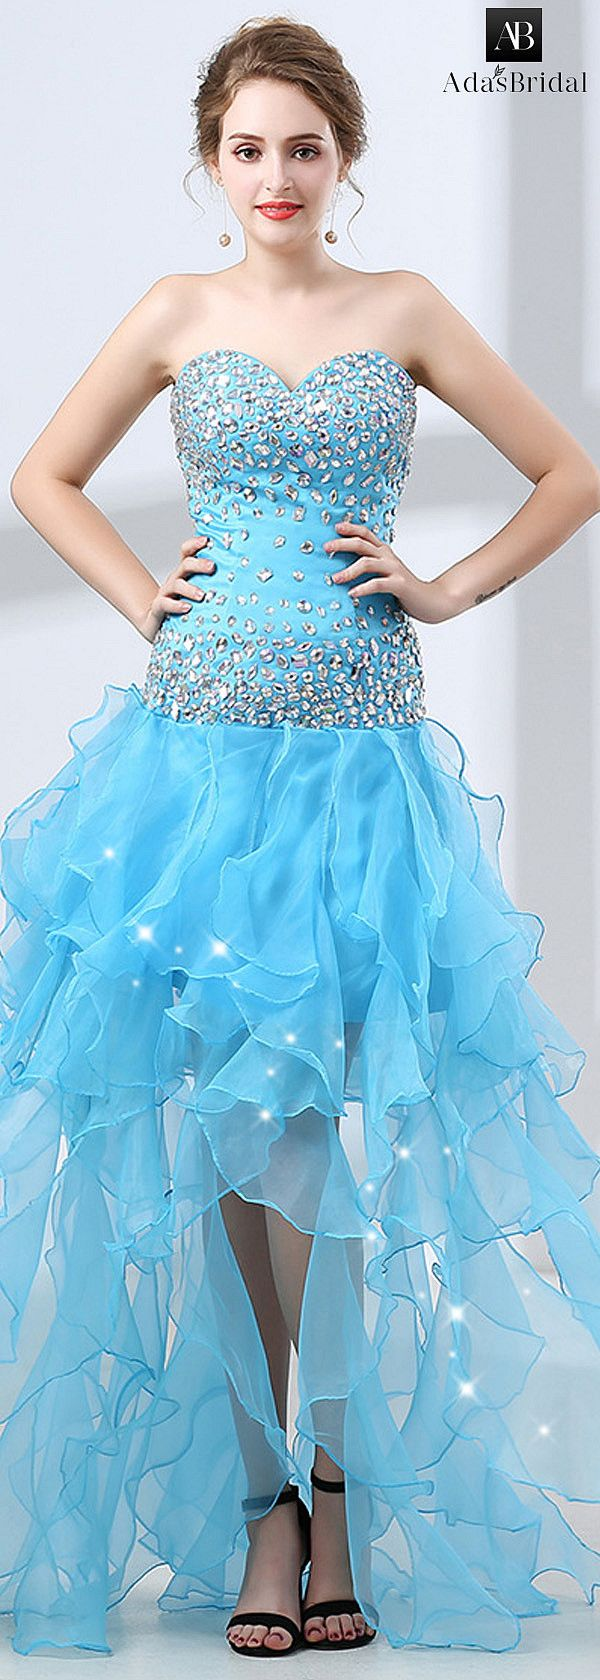 Modest diamond tulle sweetheart neckline aline prom dress with